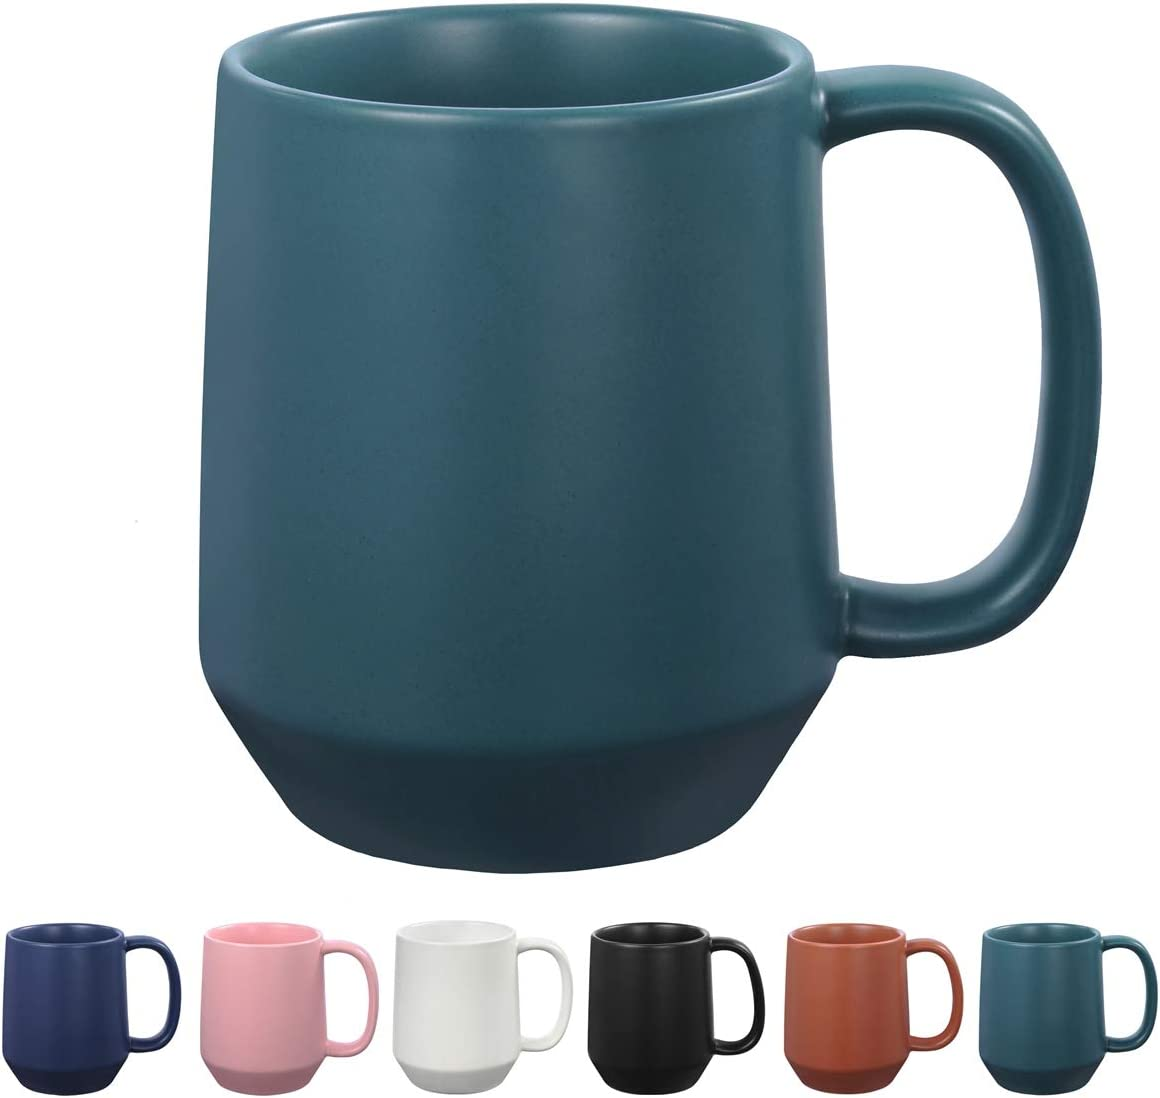 Miicol 16 oz Large Ceramic Coffee Mug, Tea, Mulled Drinks Cup, Gift for Office Staff or Home Using, Microwave and Dishwasher Safe, Frosted Surface, Turquoise